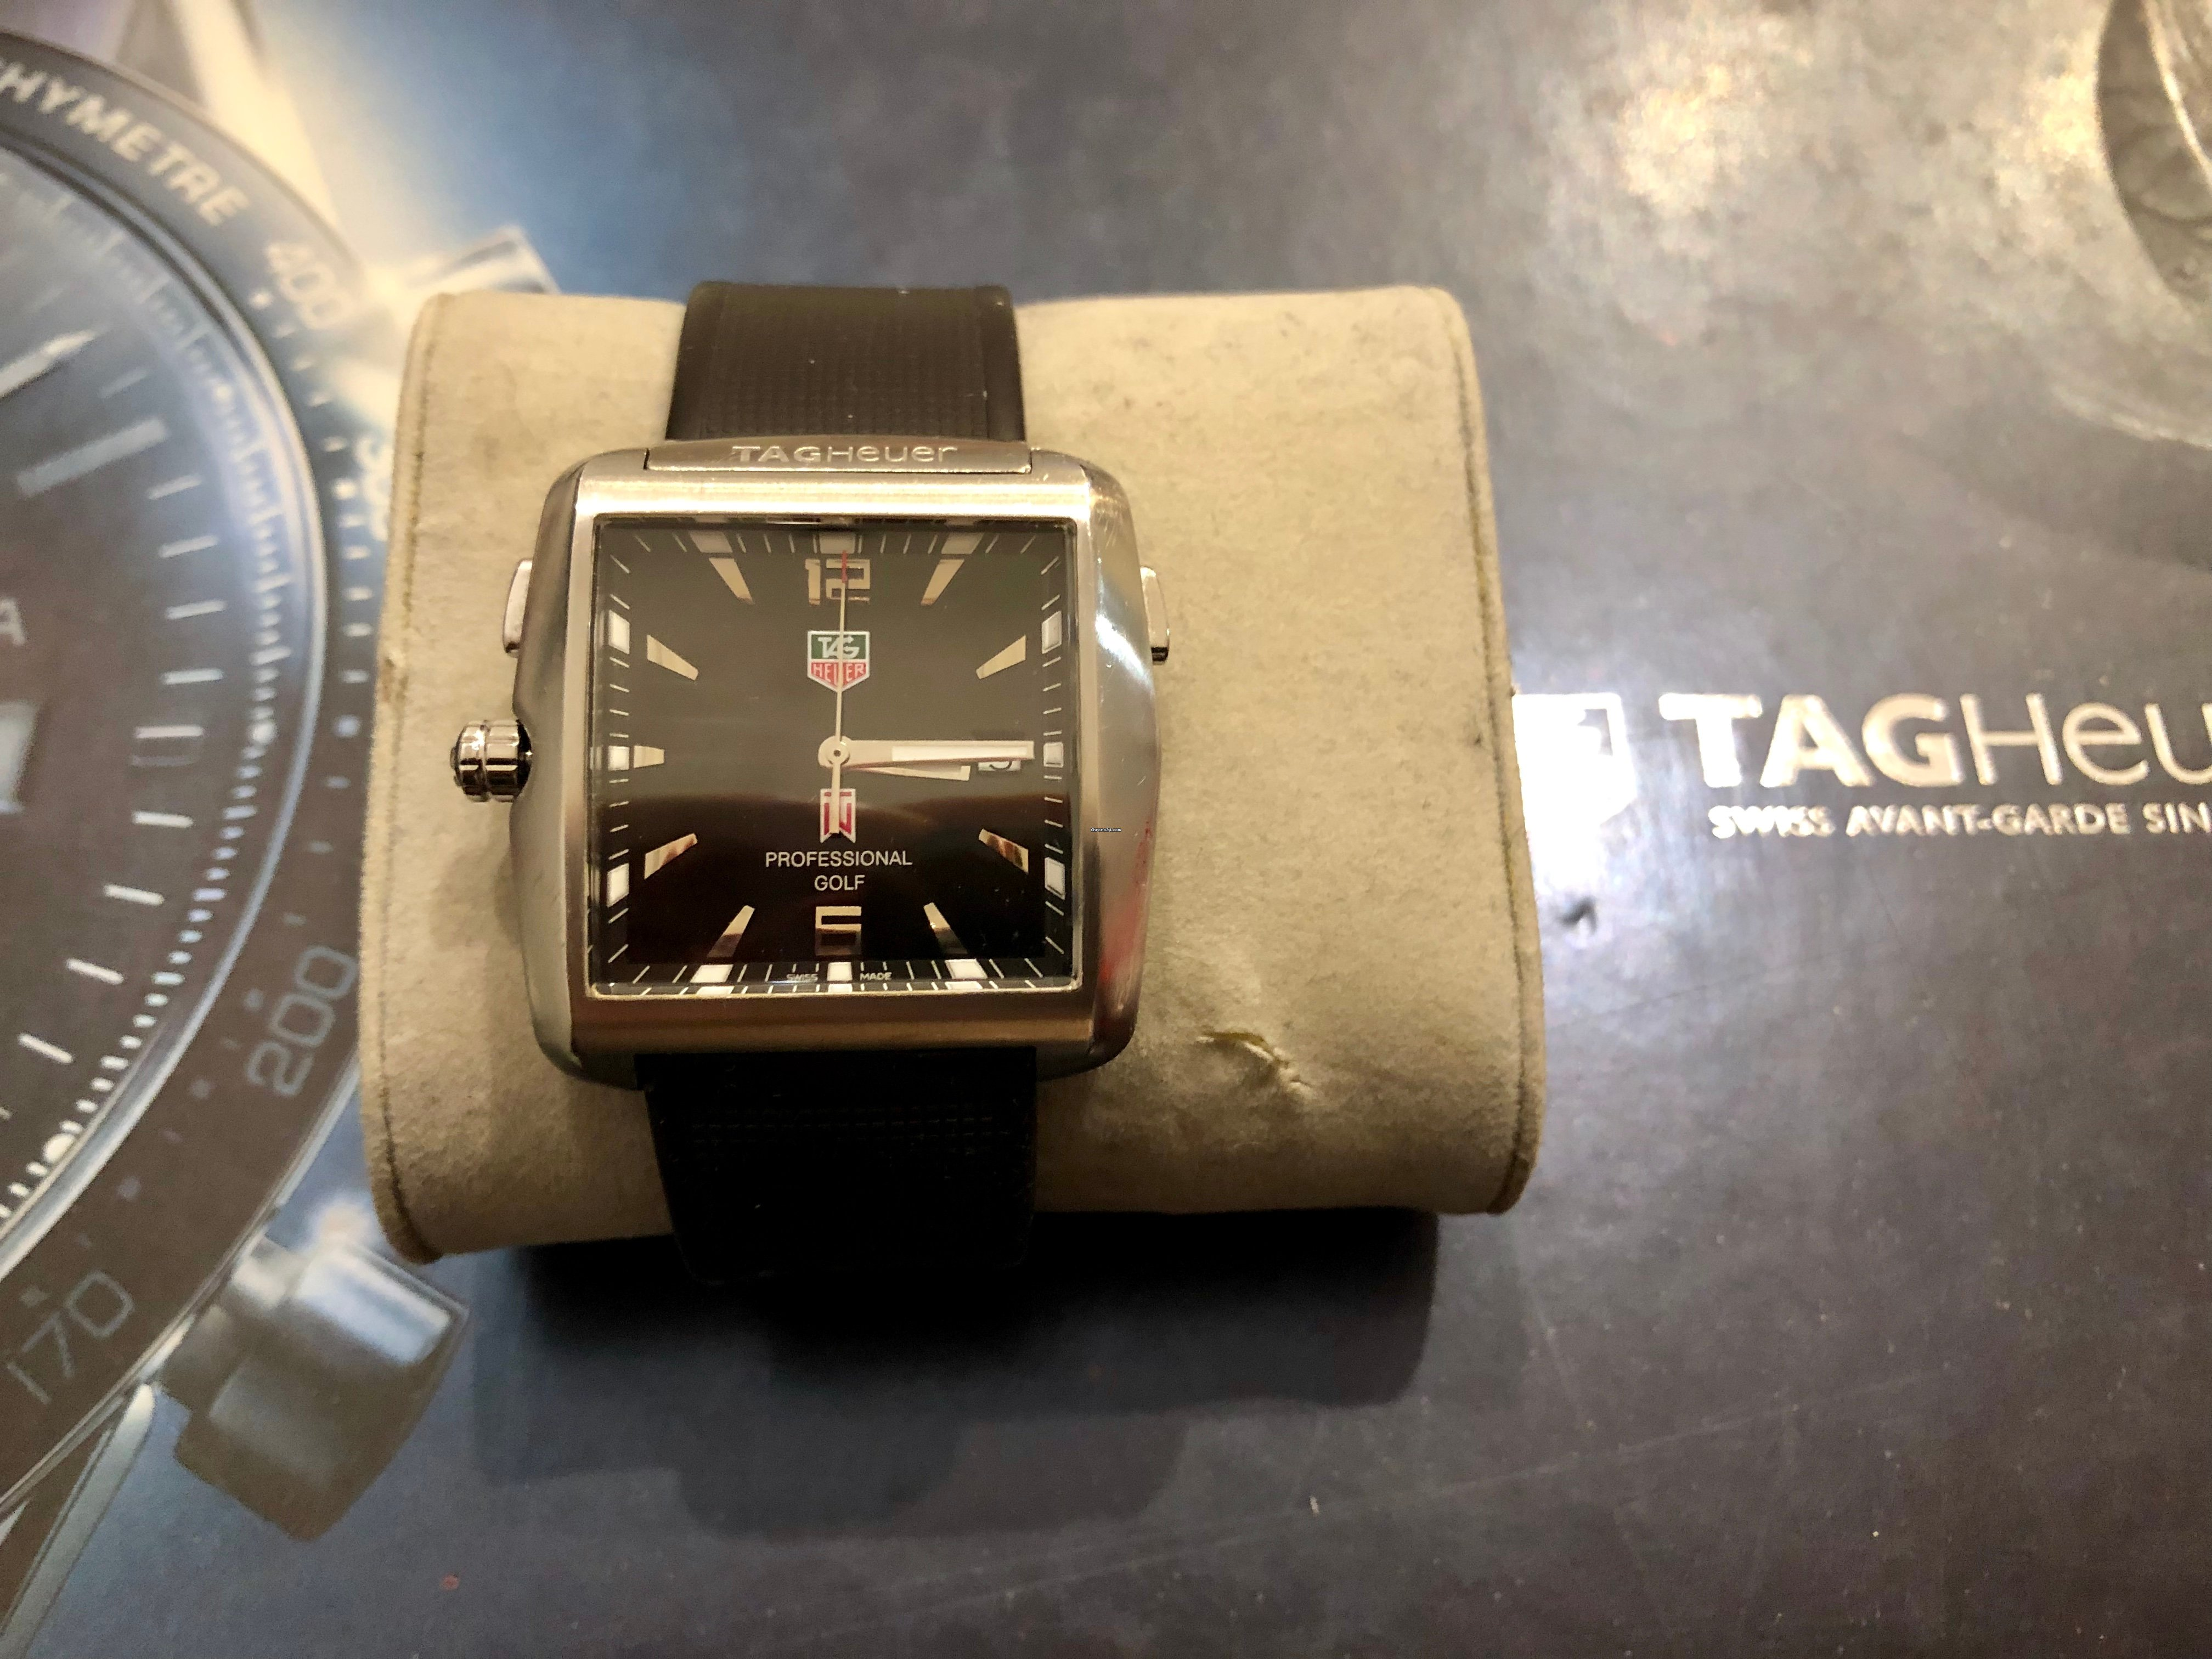 Tag Heuer Professional Golf Watch For 842 For Sale From A